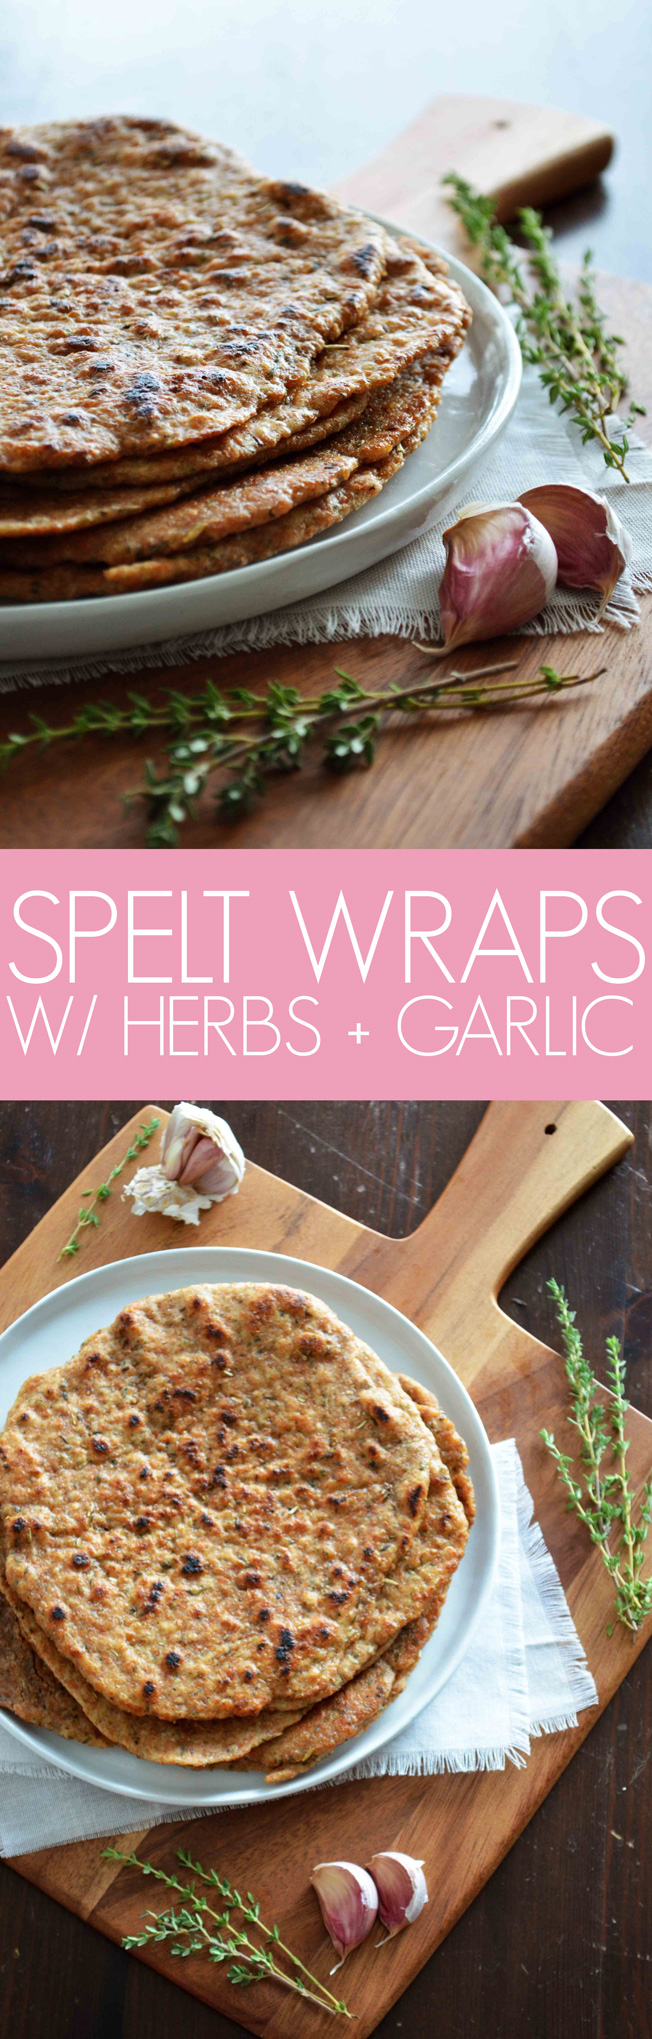 A recipe for Whole Wheat Spelt Wraps with Herbs and Garlic. Made with wholesome ingredients that nourish your body {vegan}